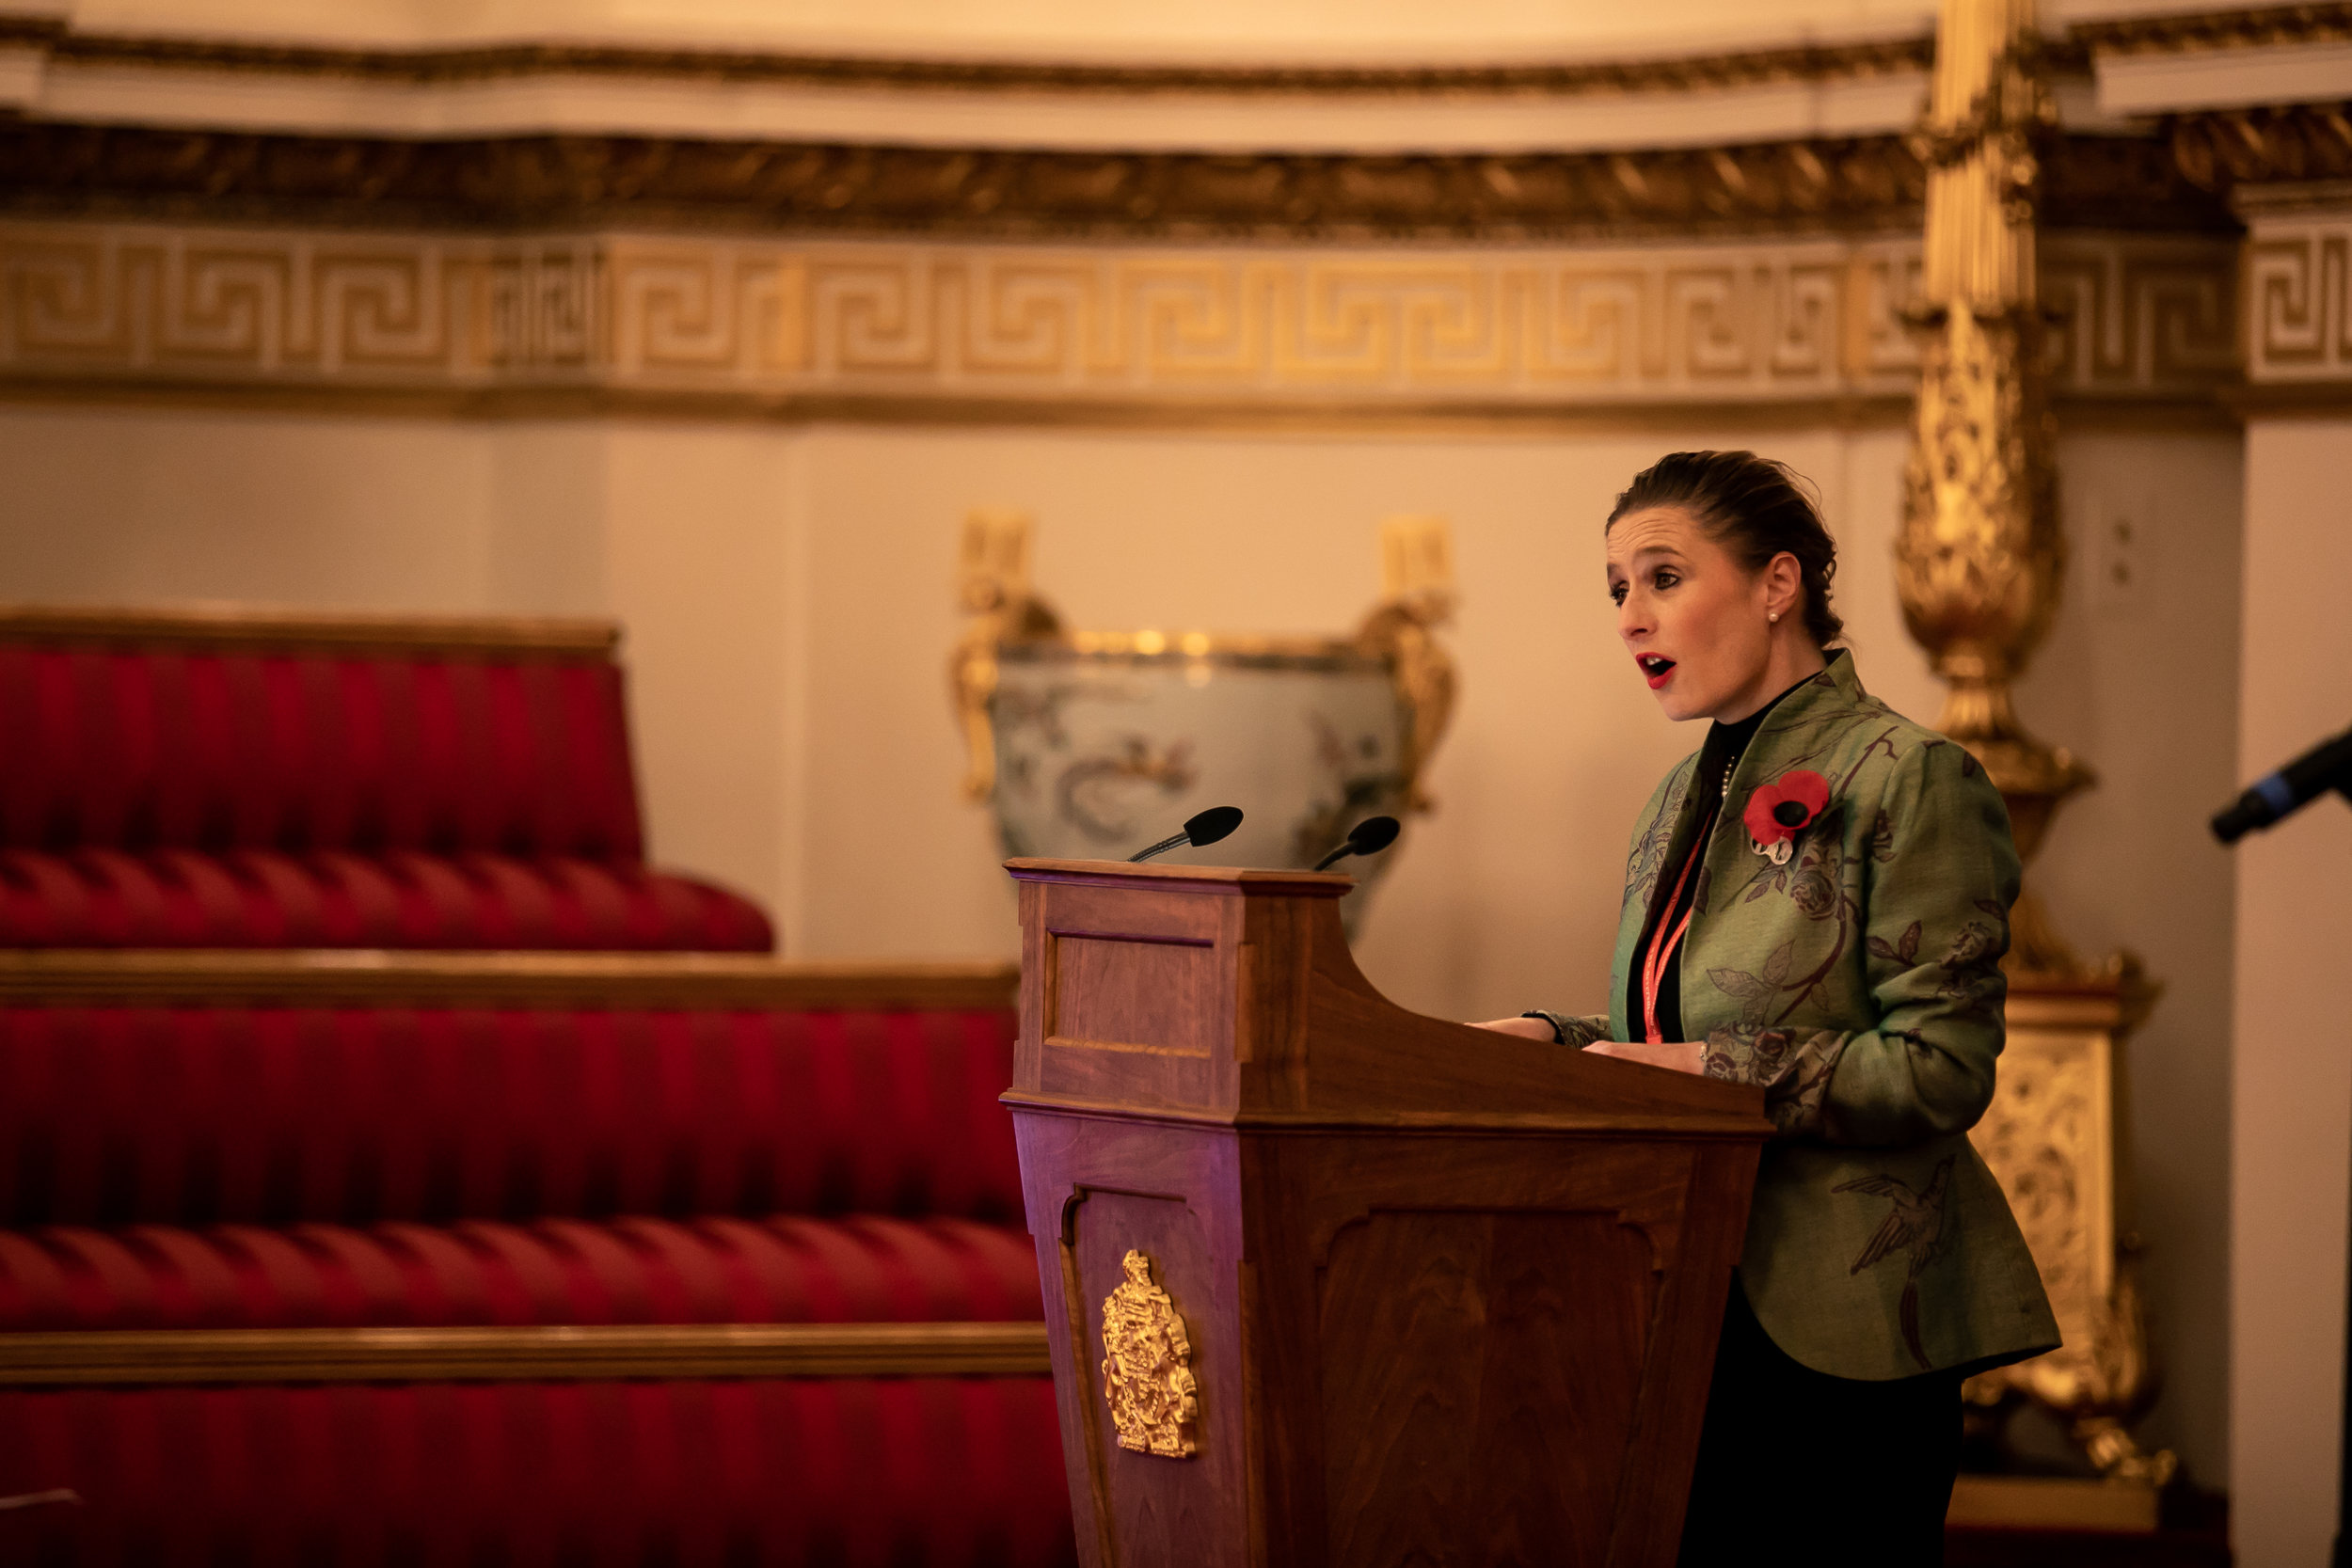 Lady Lucy French OBE. Founder and Chief Executive of Never Such Innocence, addresses the winners and guests